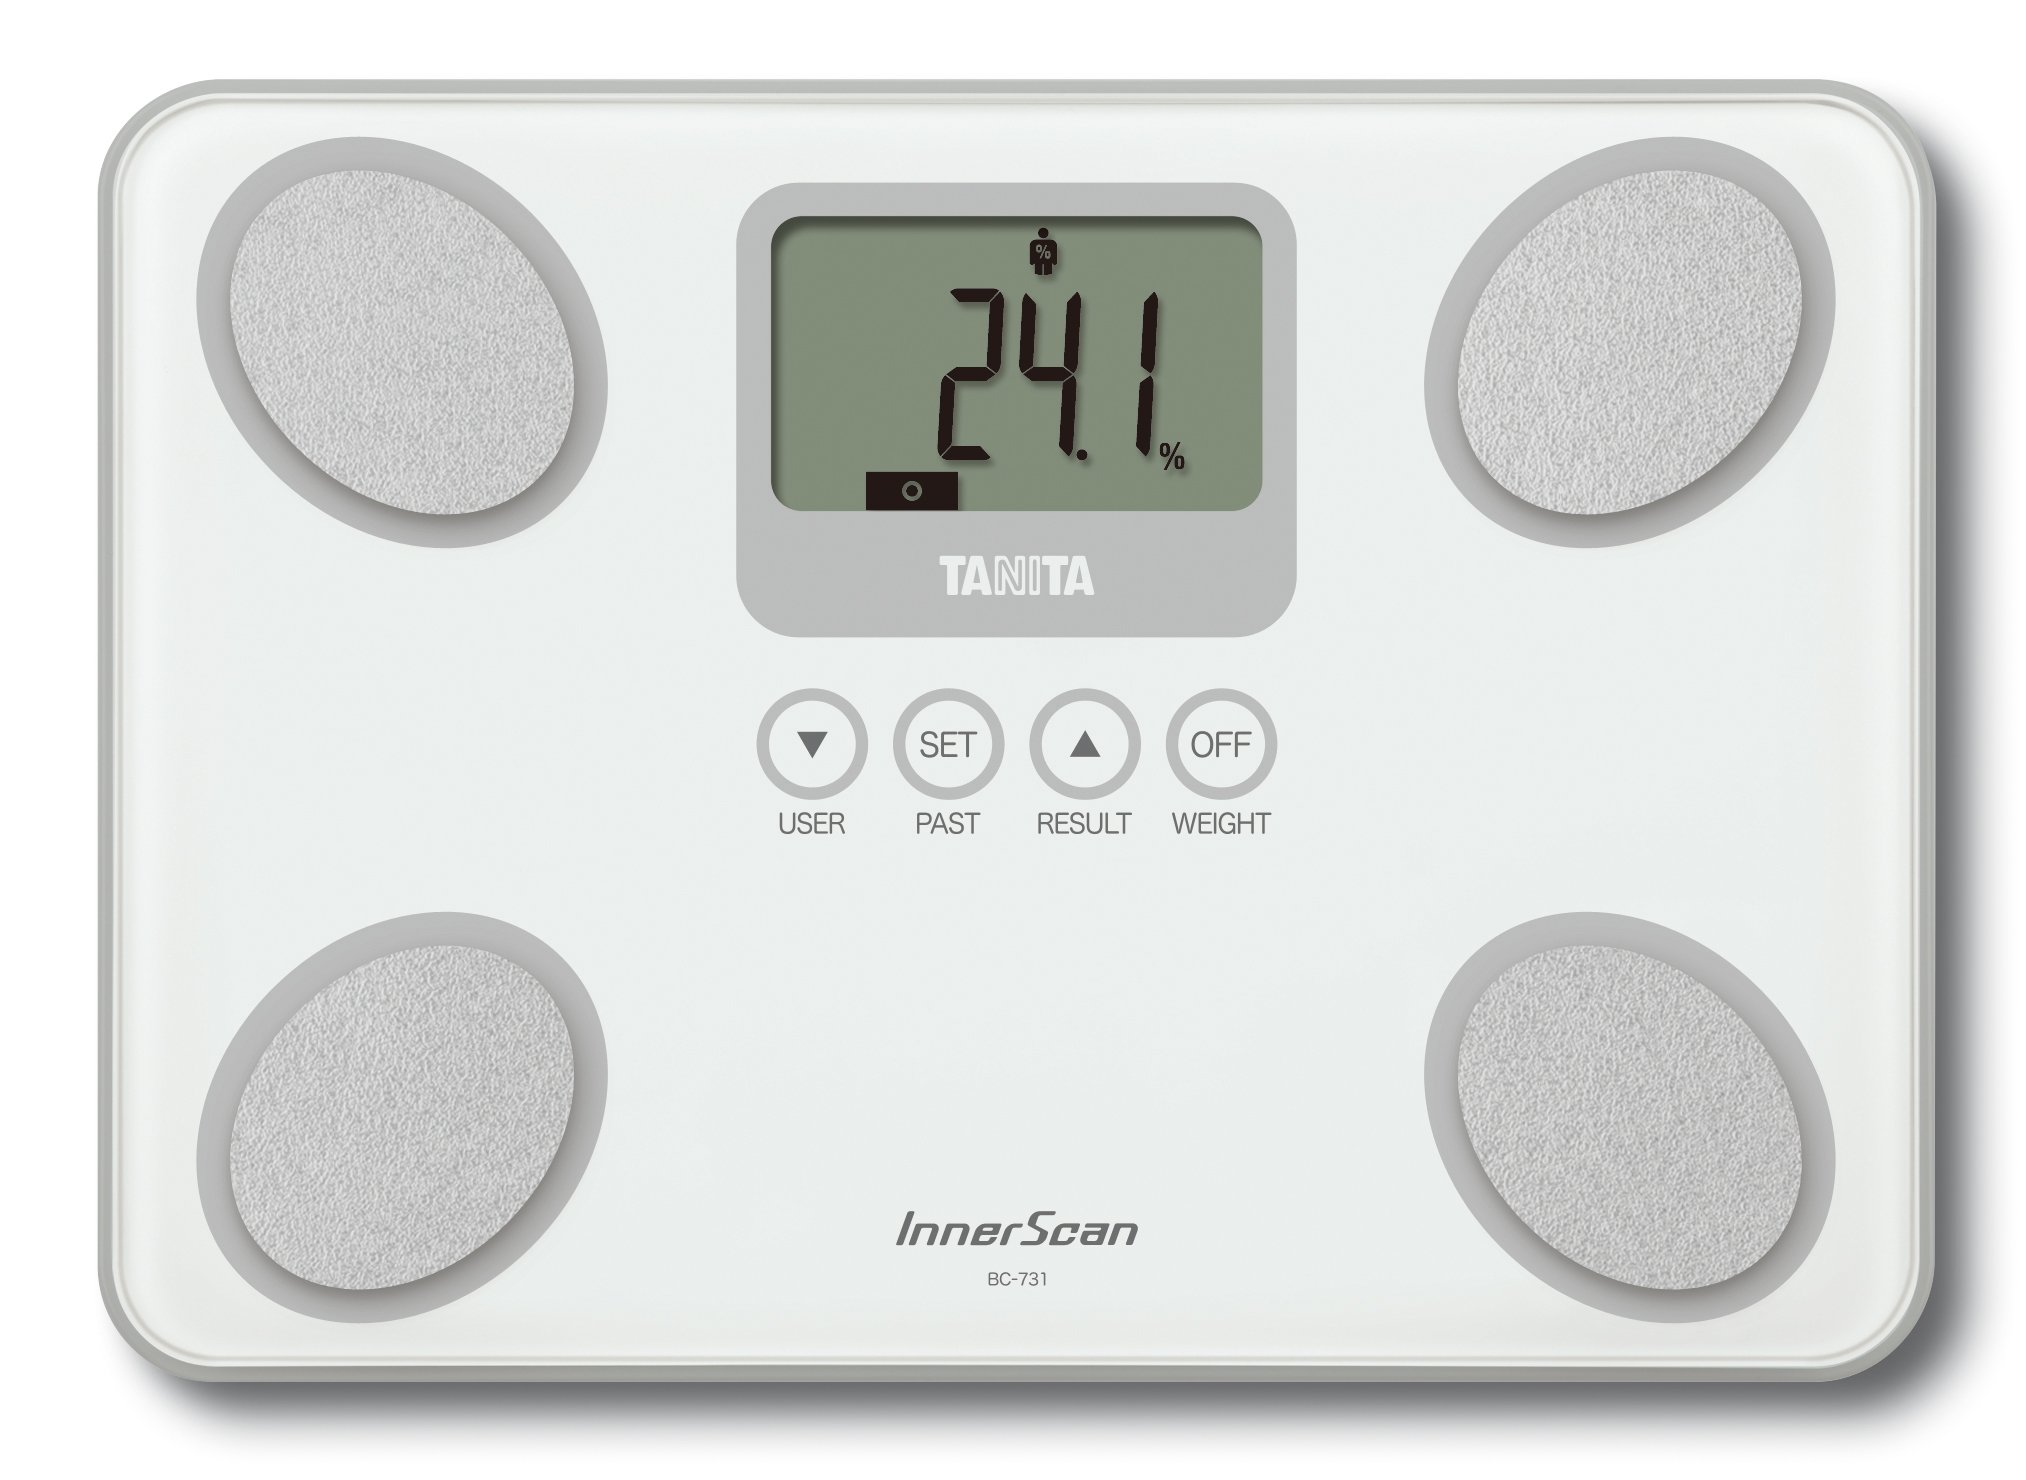 Tanita InnerScan Body Composition Monitor Scale - White